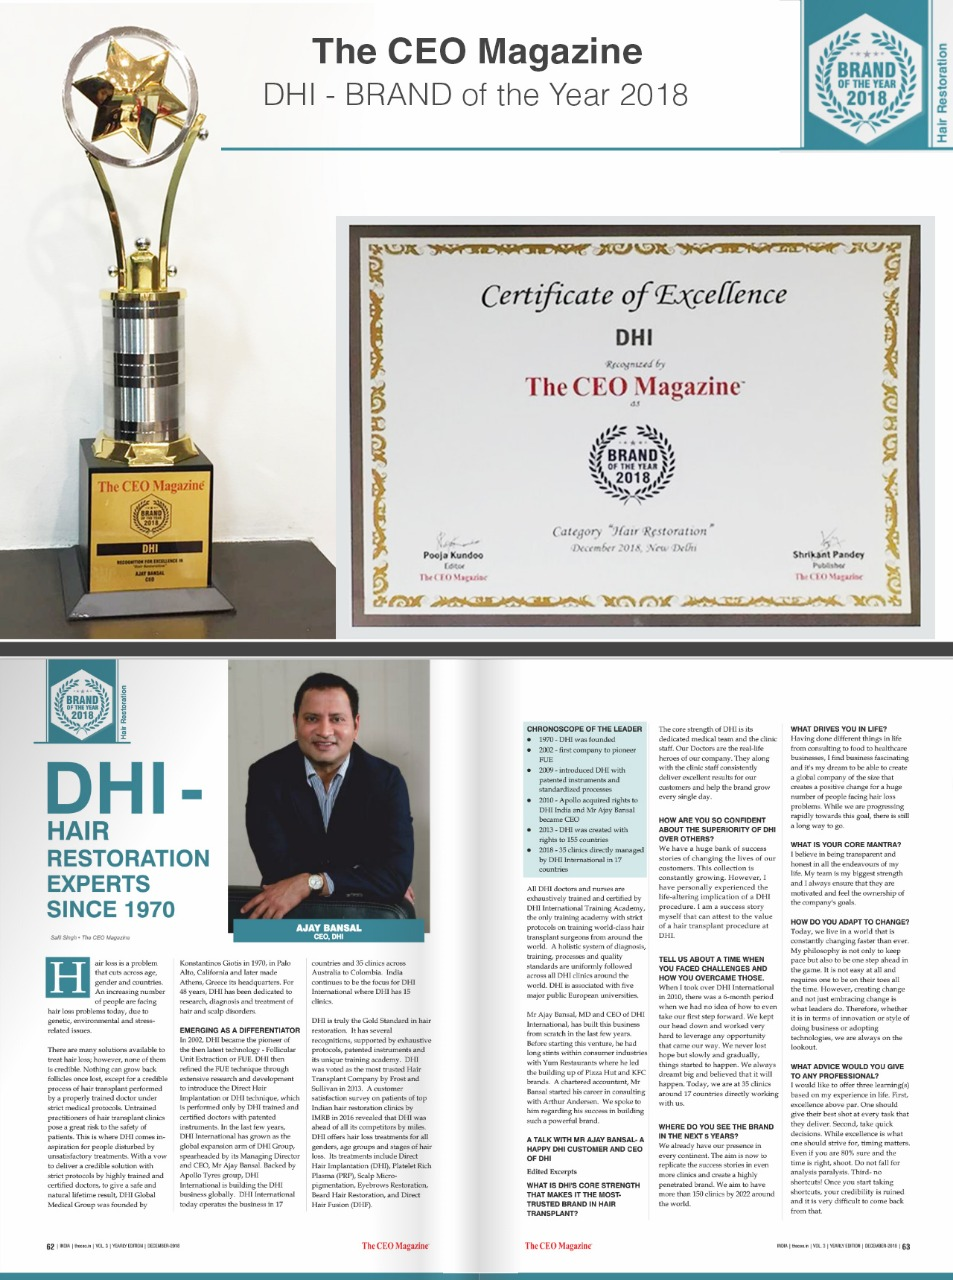 DHI awarded the Brand of the Year